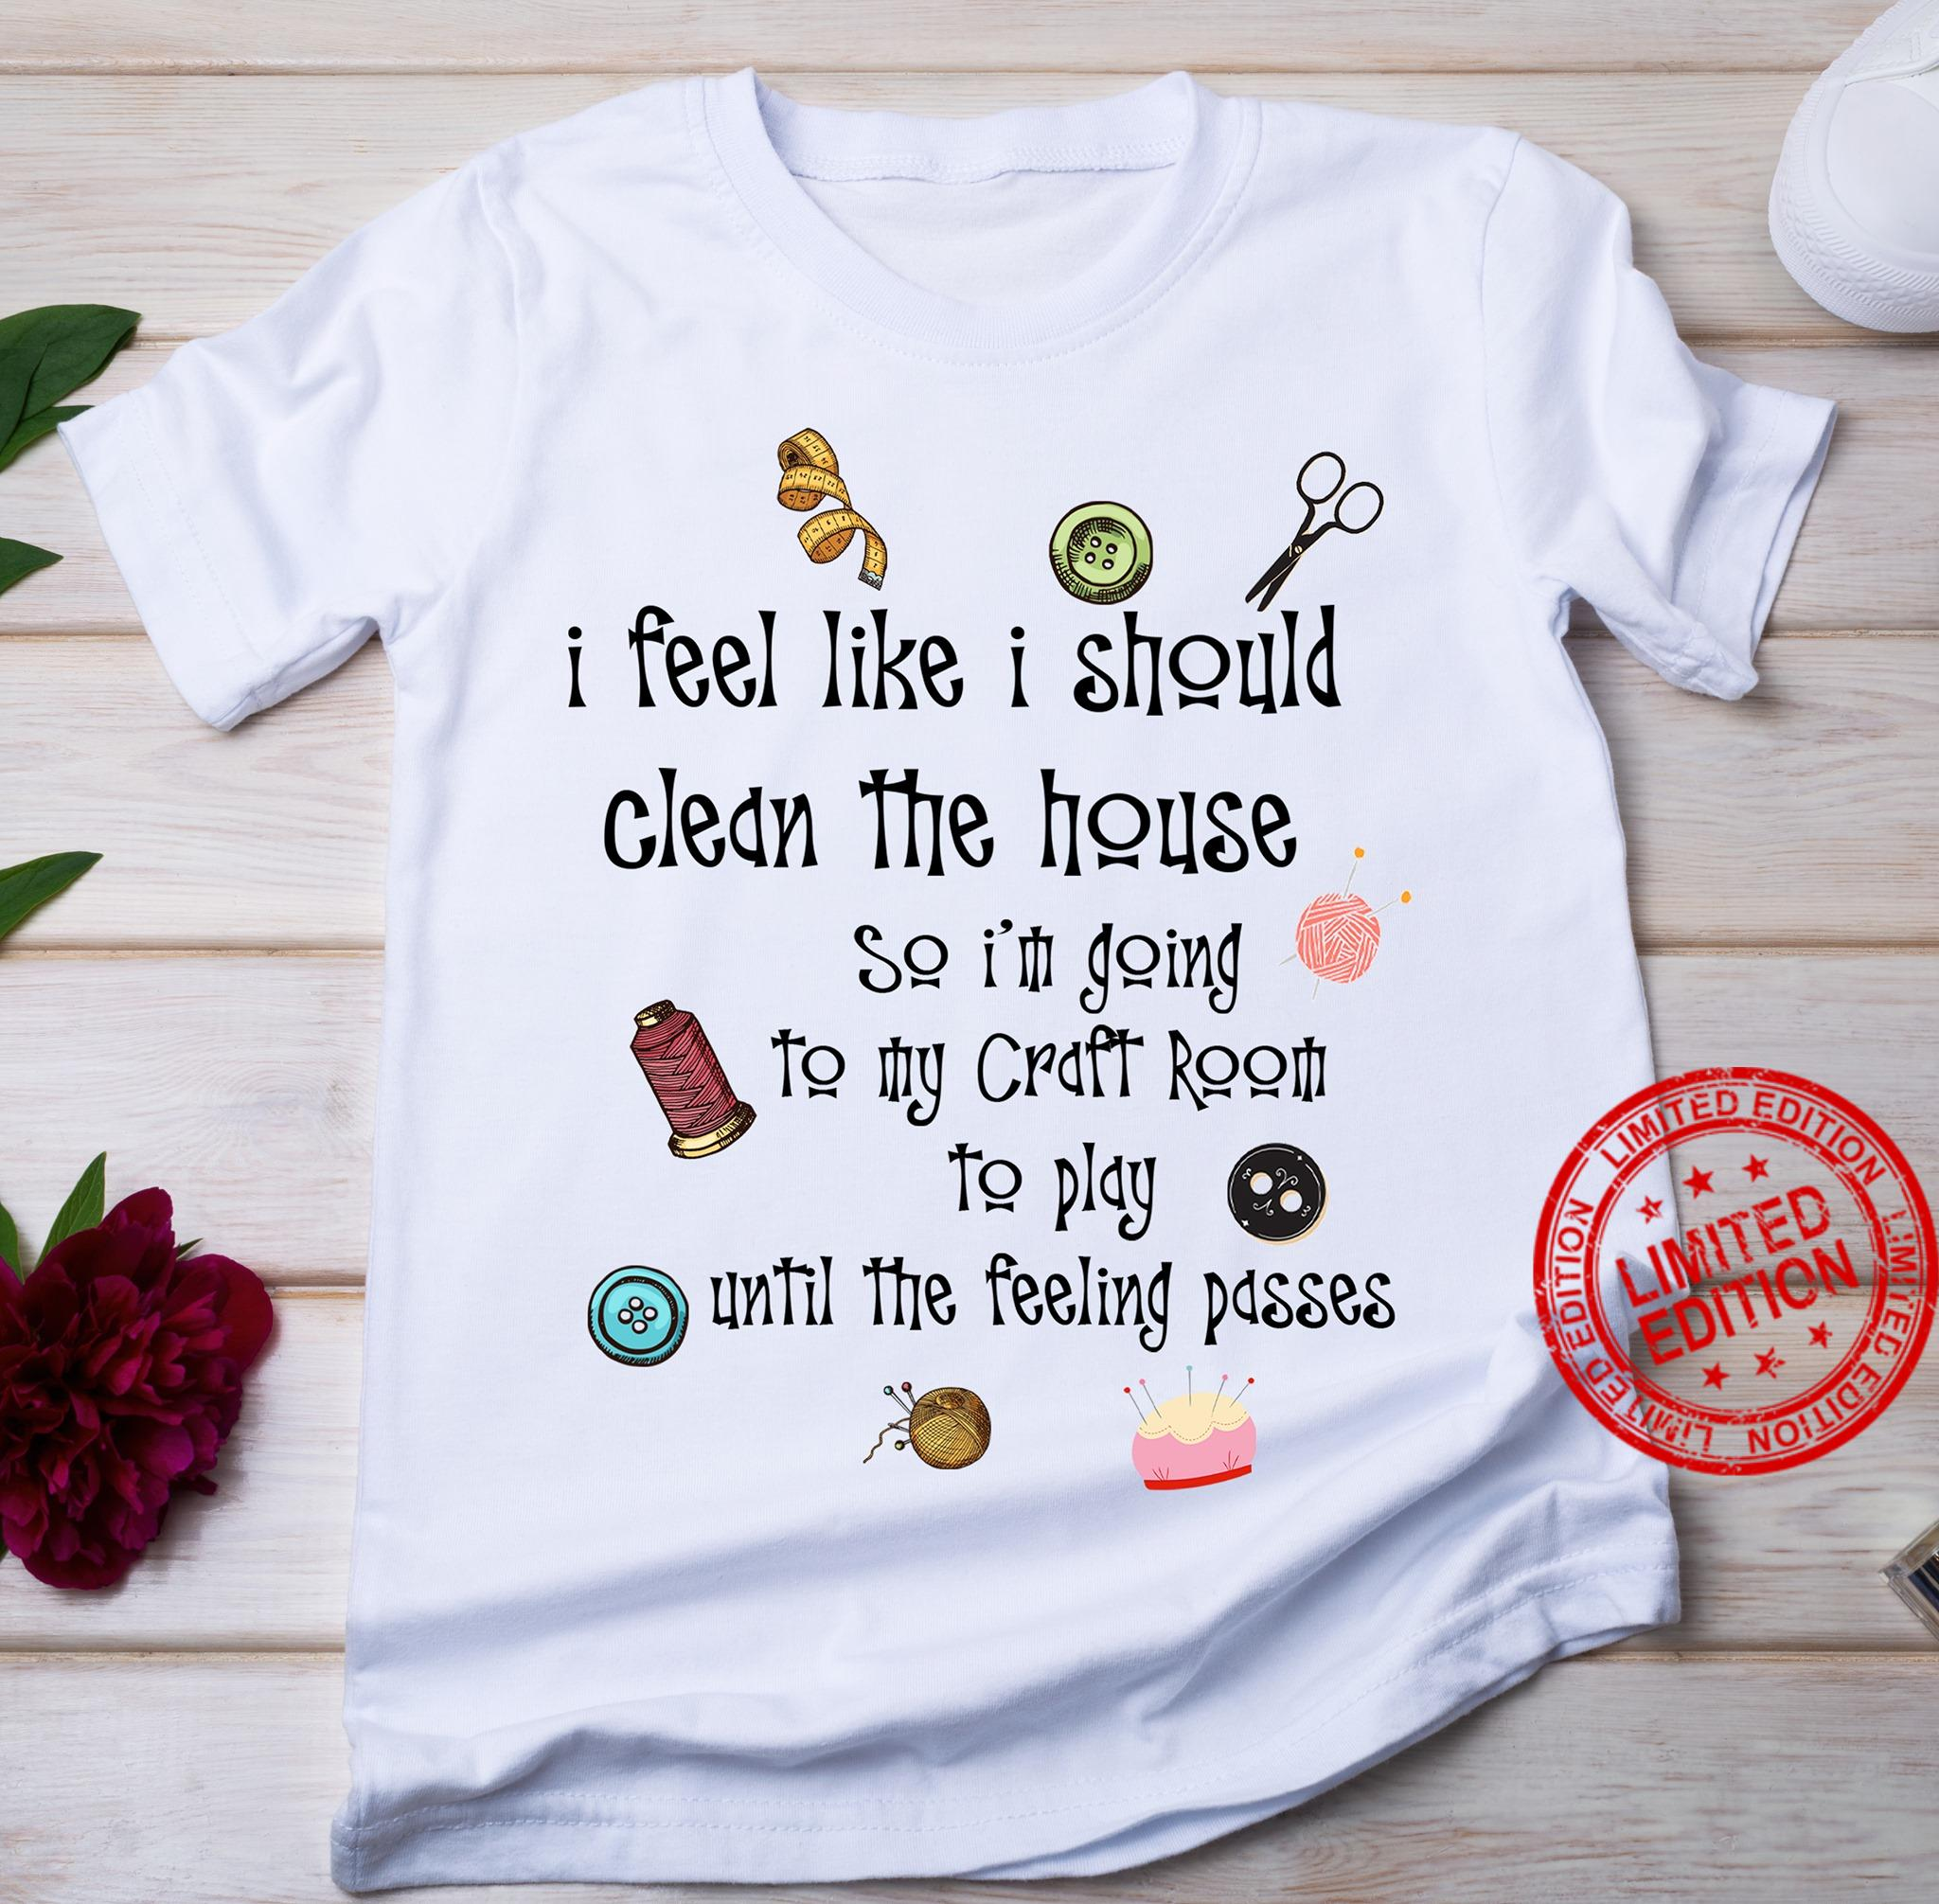 I Feel Like I Should Clean The House So I'm Going To My Craft Room To Play Until The Feeling Passes Shirt